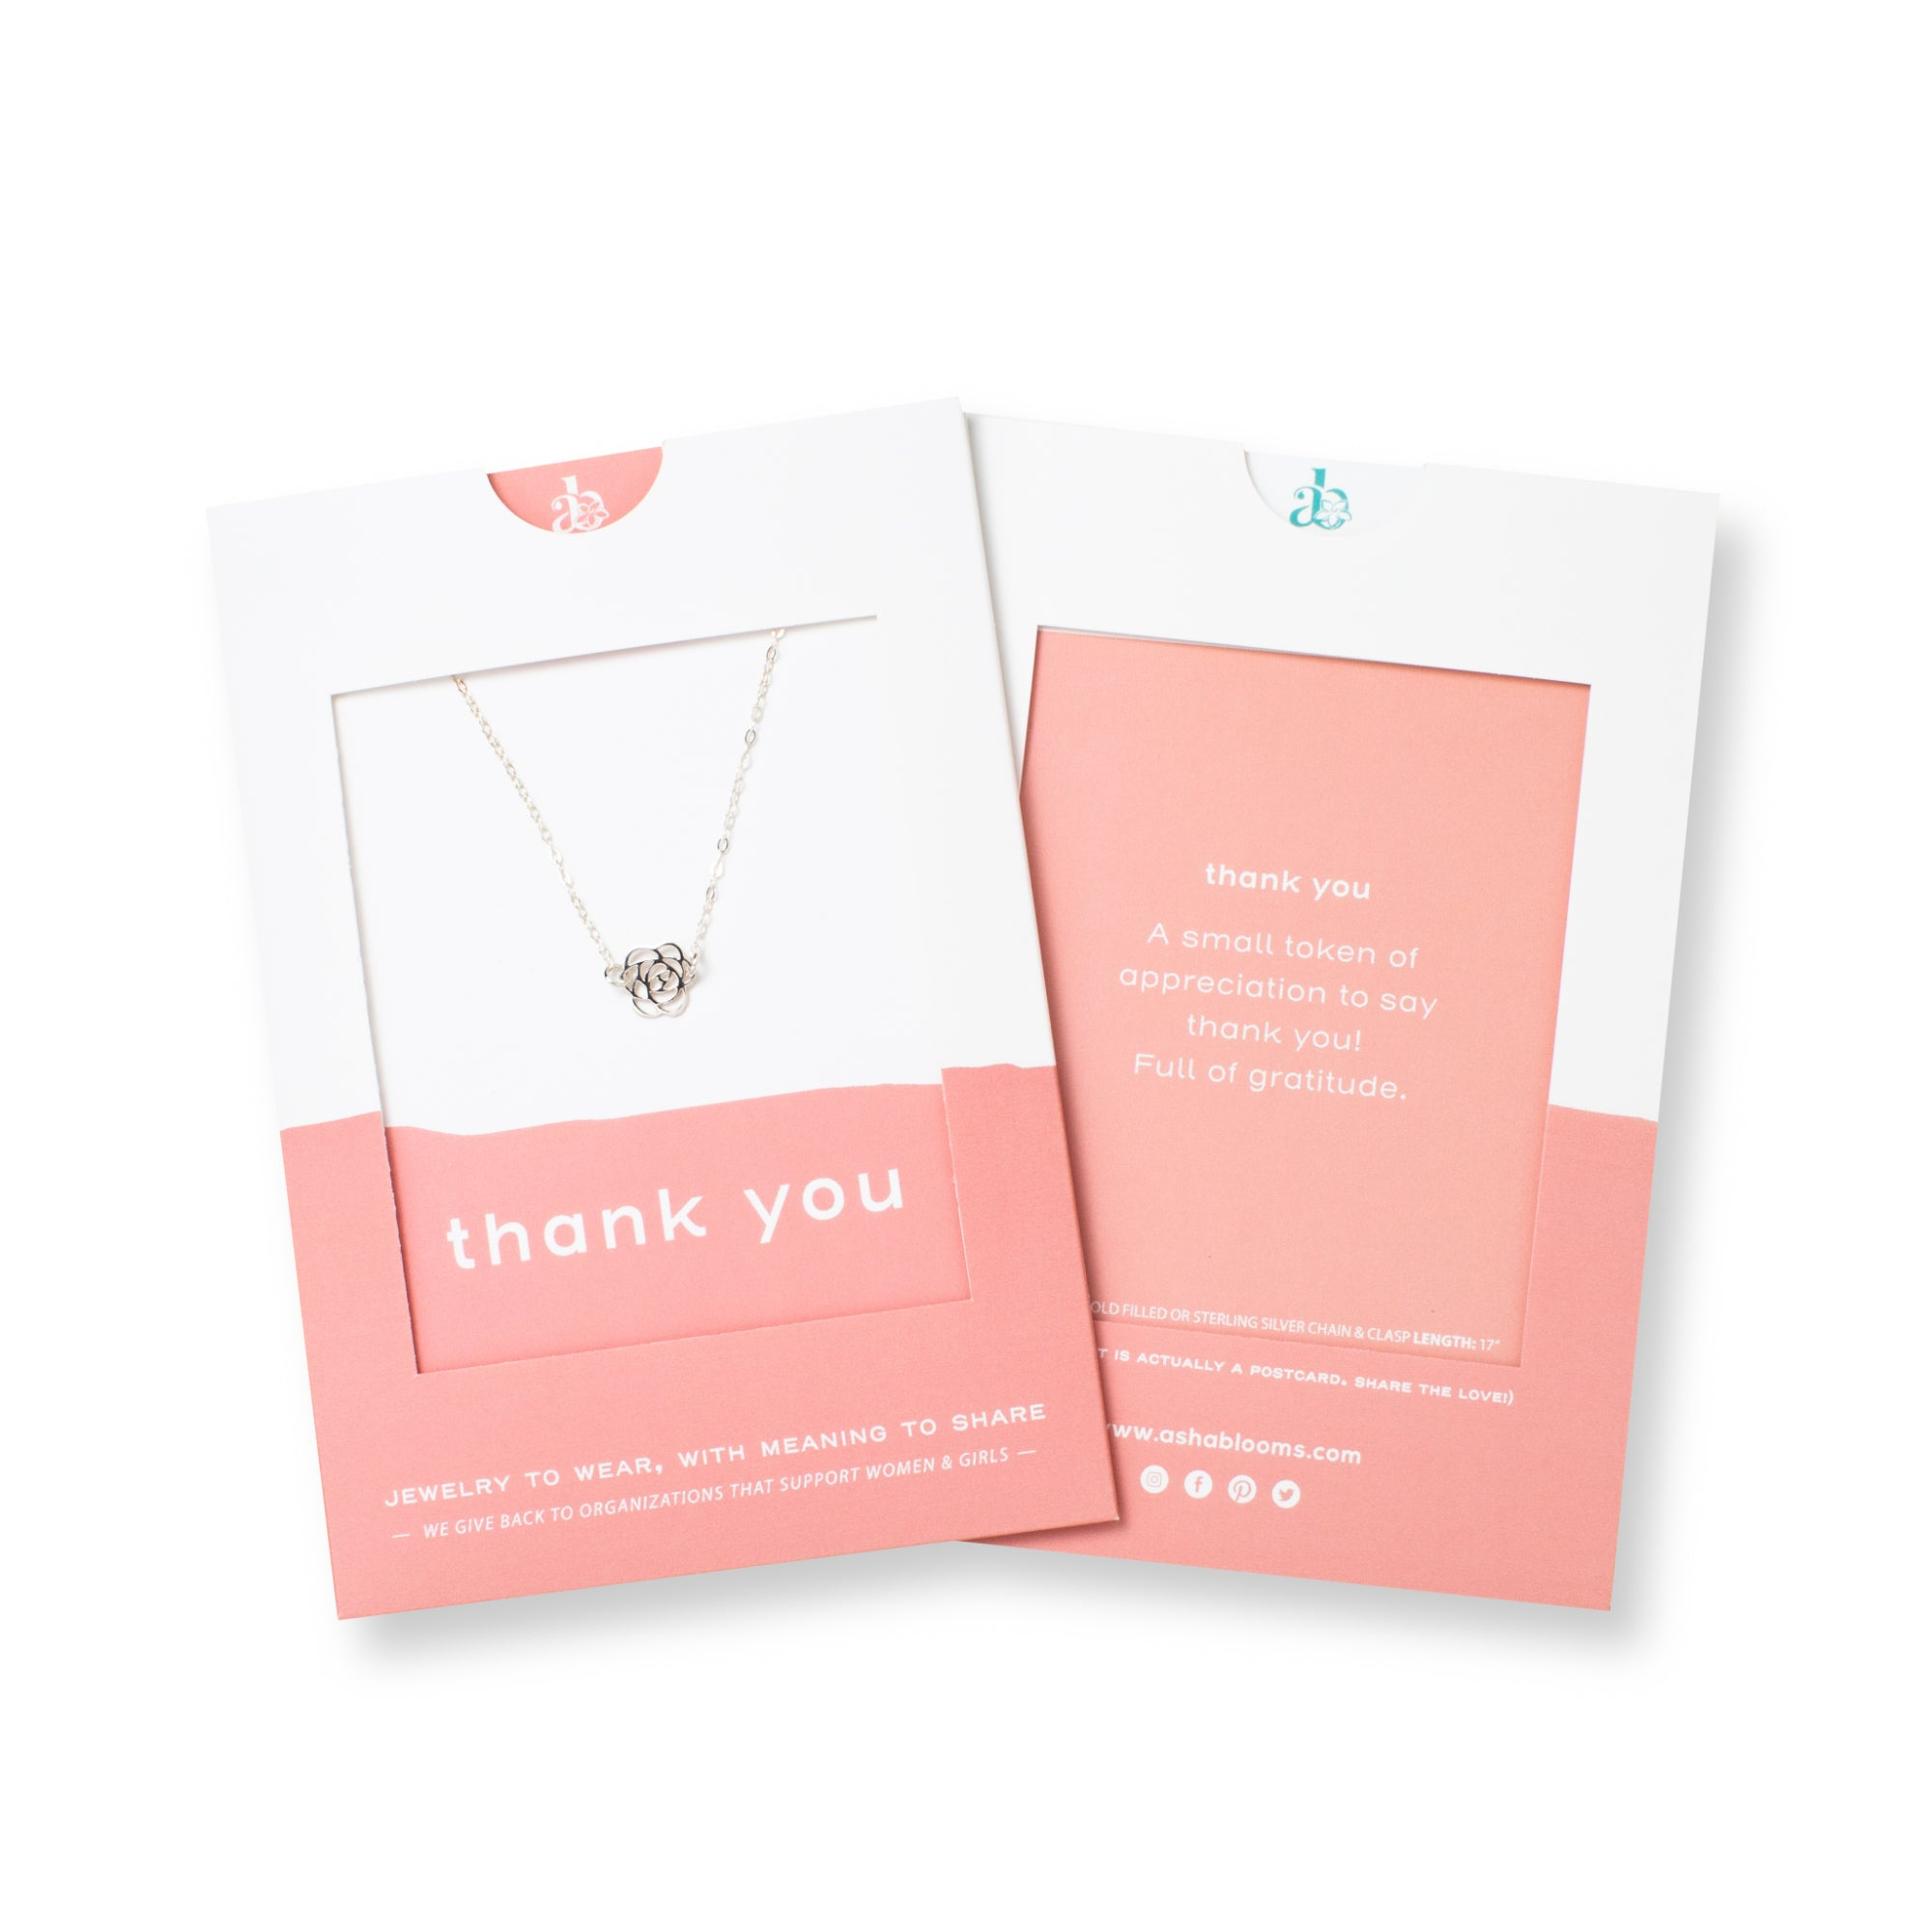 Silver Rose Pendant Necklace 'Thank You' in Pink Gift Message Sleve Packaging Photo by Asha Blooms